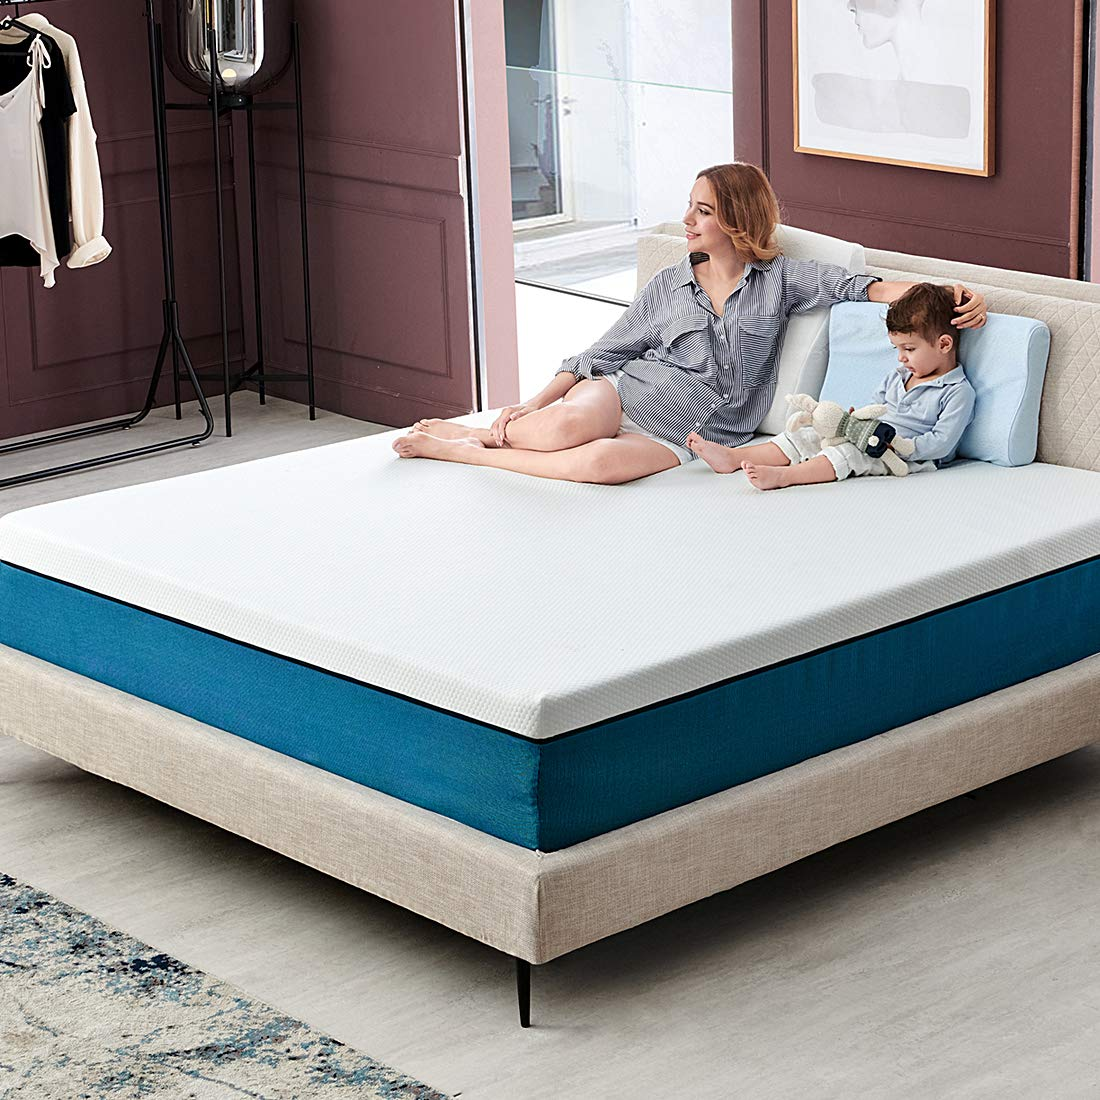 Queen Size Mattress, Molblly 10 inch Cooling-Gel Memory Foam Mattress in a Box, Breathable Bed Mattress with CertiPUR-US Certified Foam for Sleep Supportive & Pressure Relief, 10 Year Warranty by Molblly